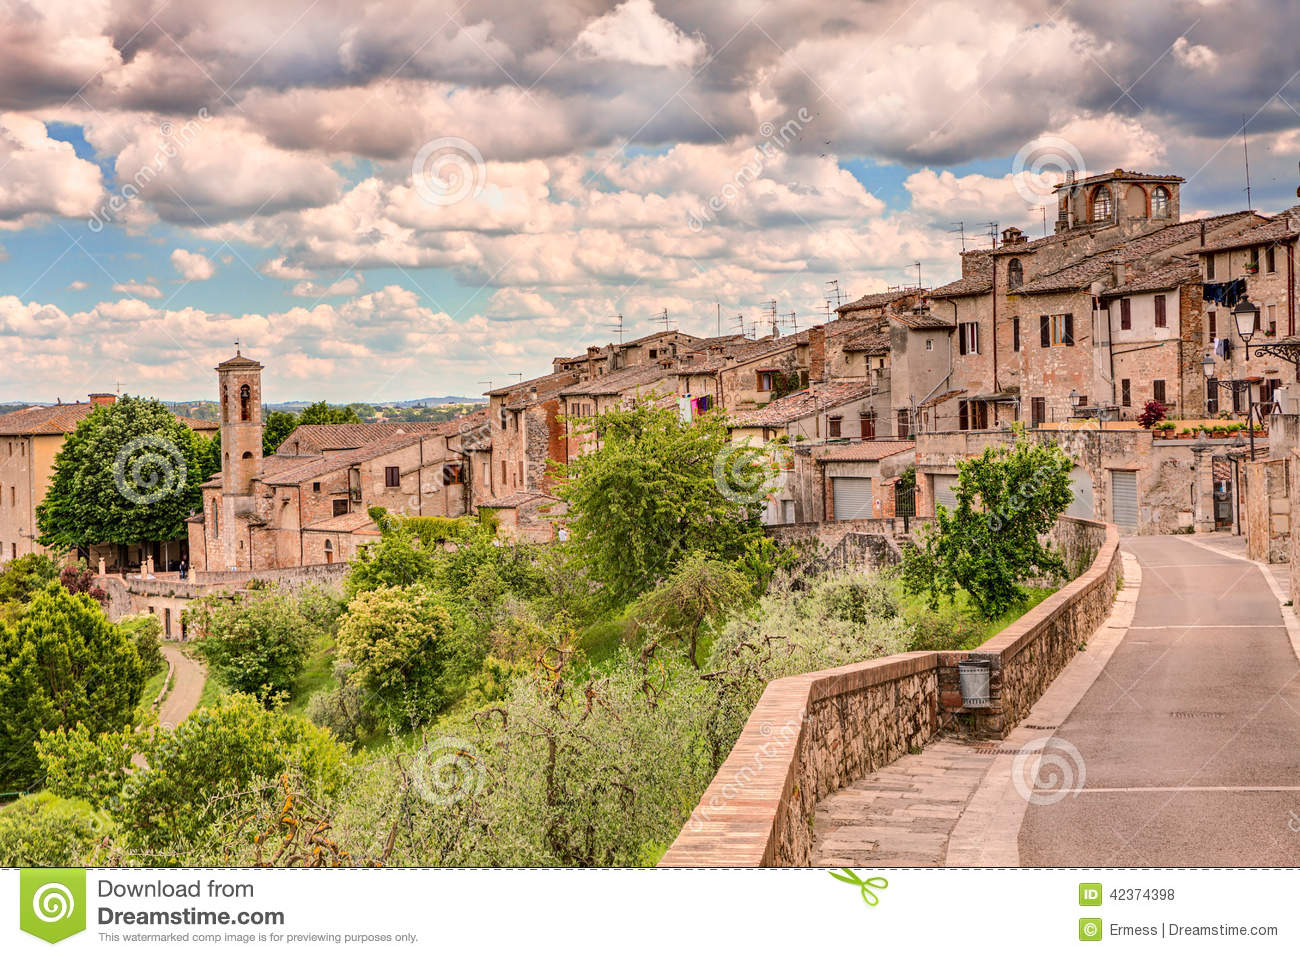 Colle Val D'Elsa Italy  city images : Landscape Of Colle Di Val D'Elsa, Tuscany, Italy Stock Photo Image ...